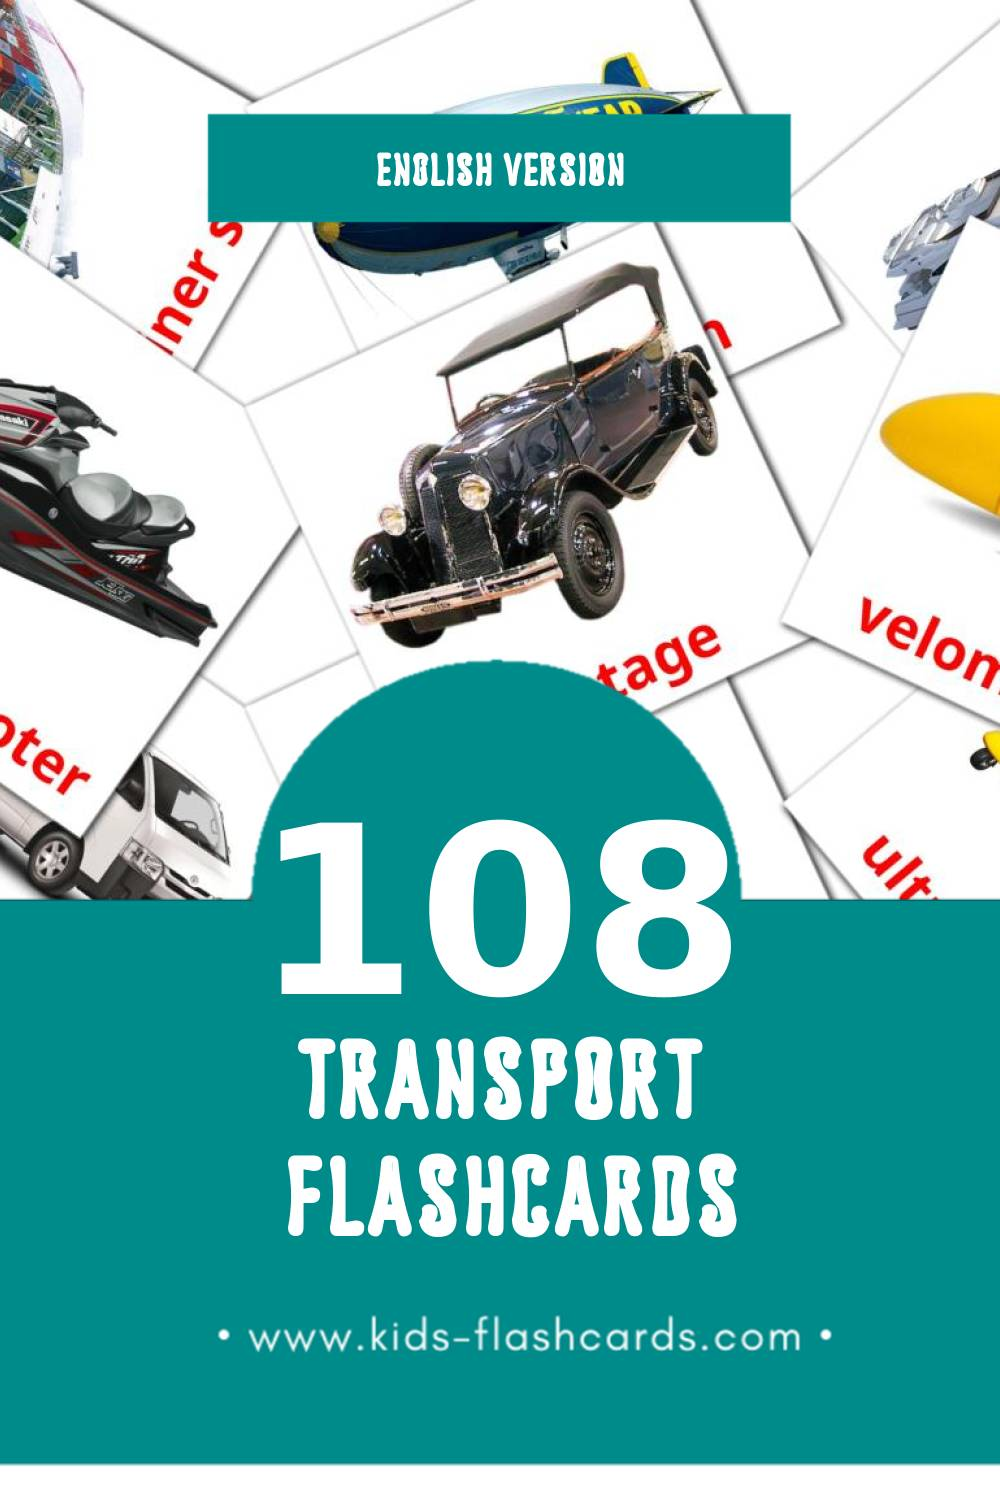 Visual Transport Flashcards for Toddlers (108 cards in English)